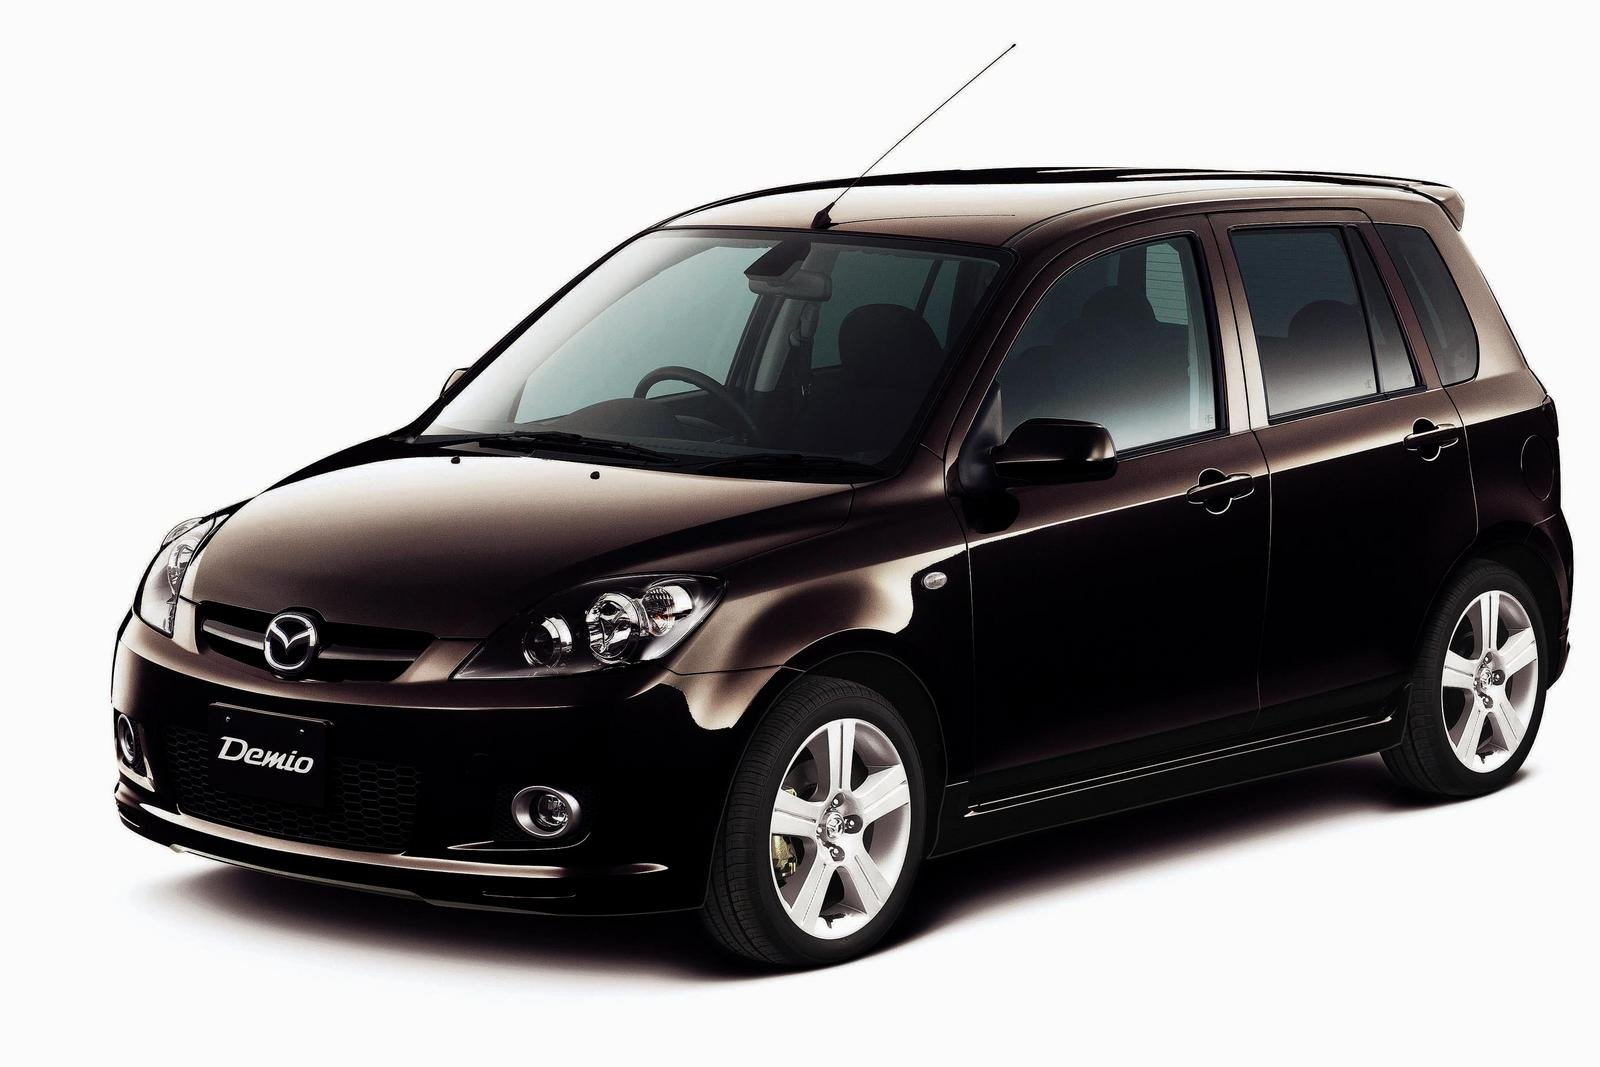 2007 mazda 39 demio 39 special edition picture 115135 car review top speed. Black Bedroom Furniture Sets. Home Design Ideas